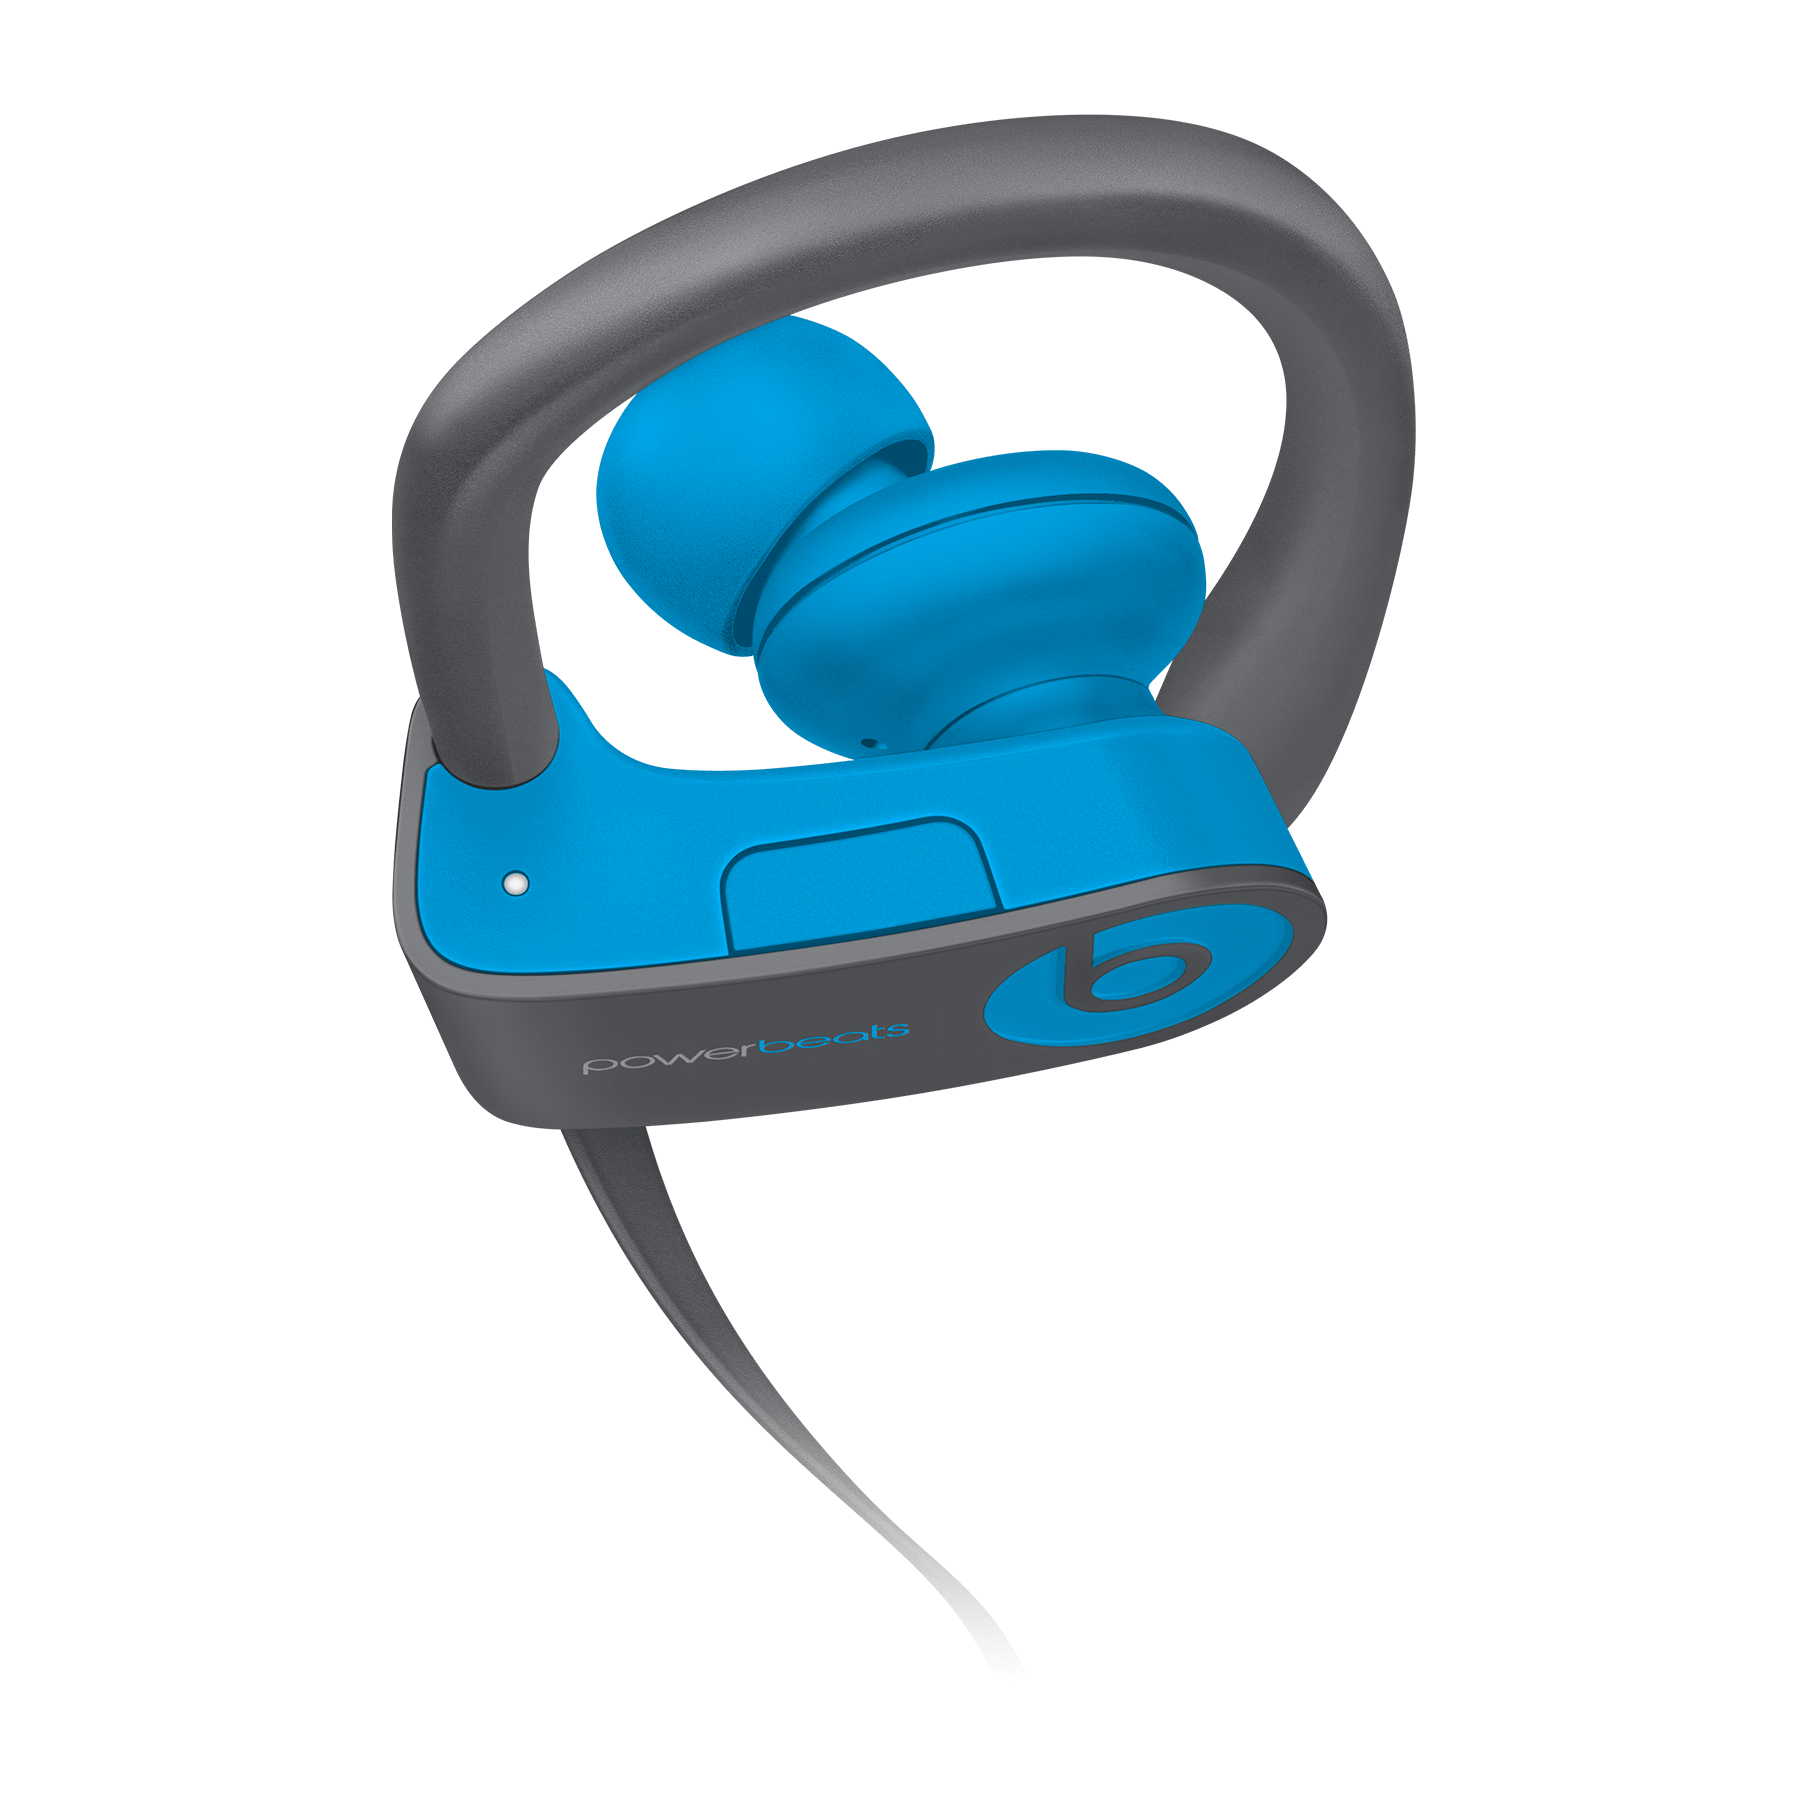 Powerbeats3 Wireless - Beats by Dre (SG)